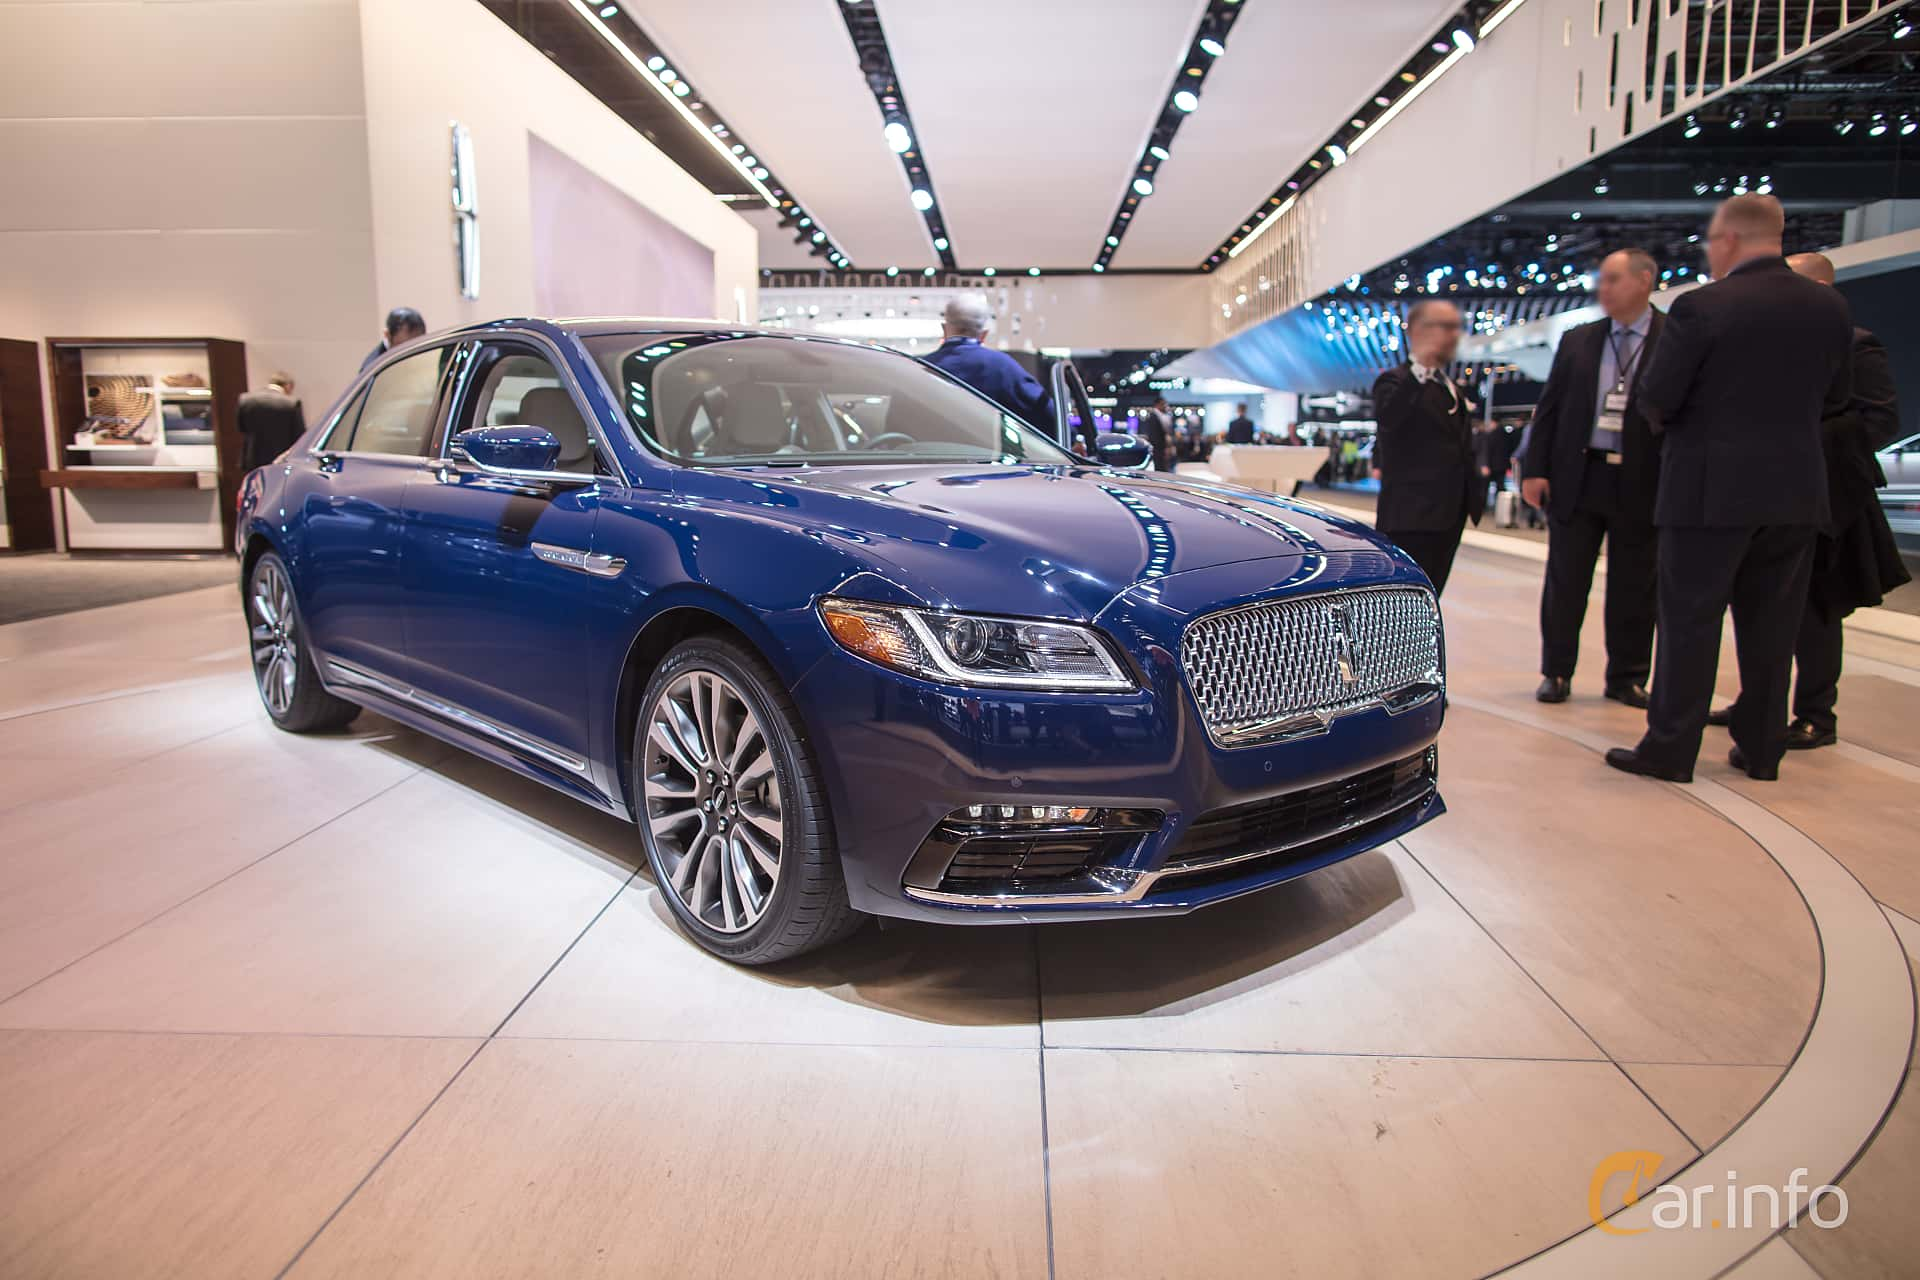 12 images of Lincoln Continental 2018 by jonasbonde